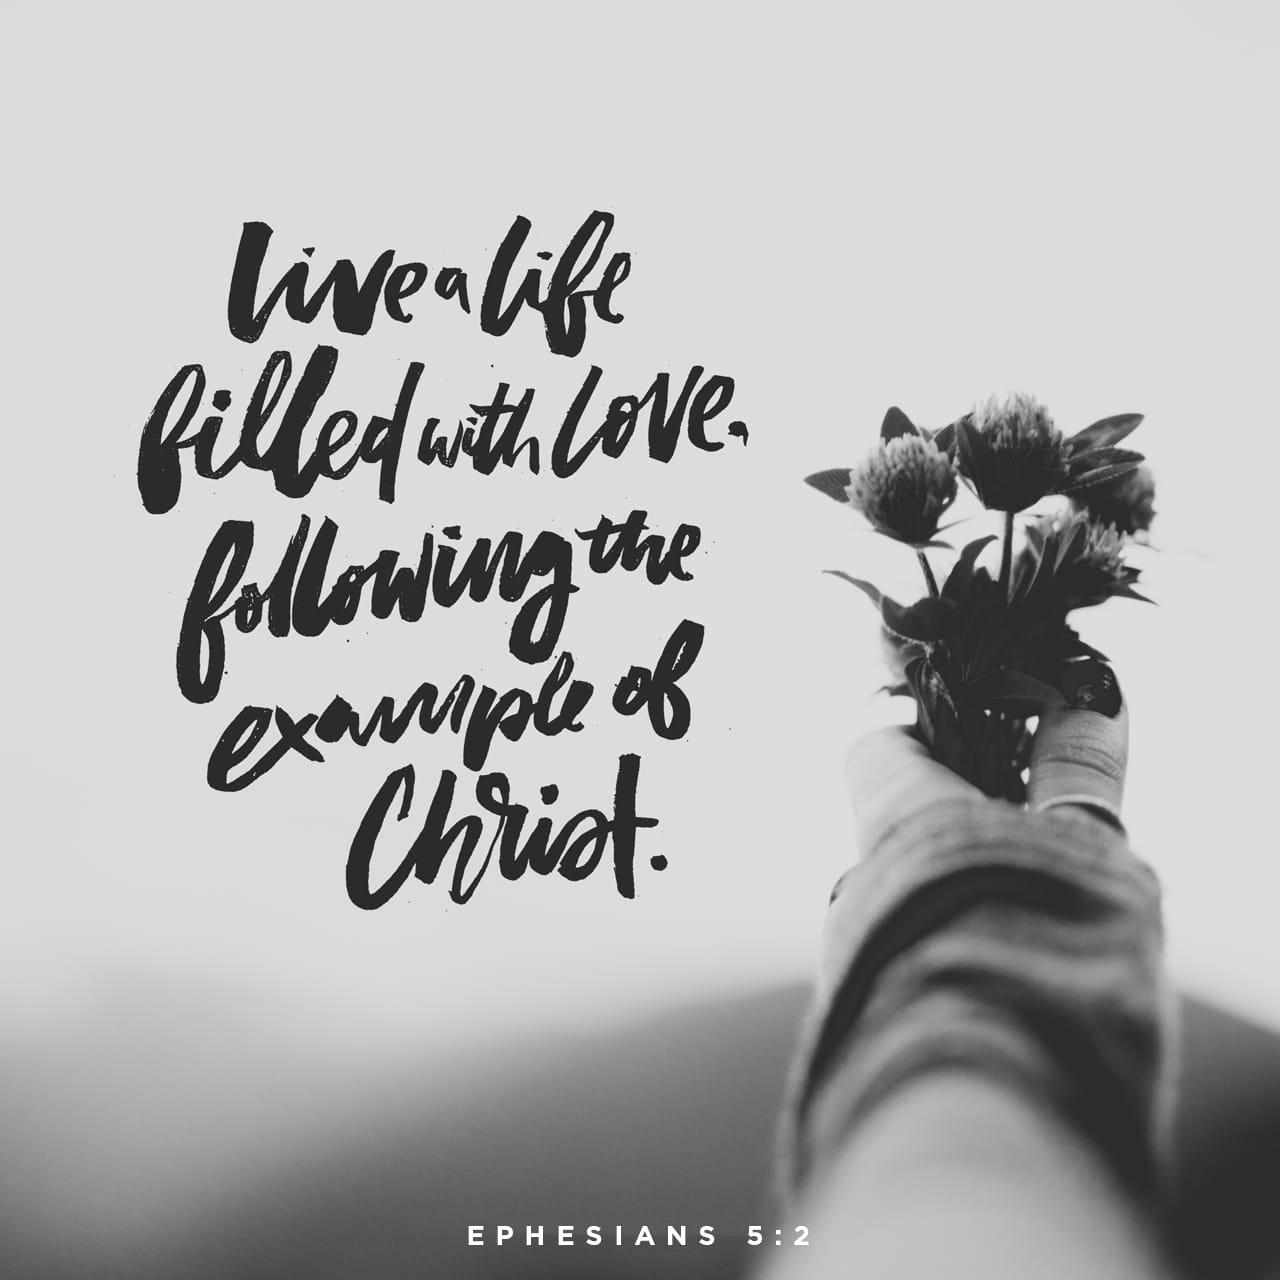 Ephesians 5:1-2 Be ye therefore followers of God, as dear children; And walk in love, as Christ also hath loved us, and hath given himself for us an offering and a sacrifice to God for a sweetsmelling savour. | King James Version (KJV)